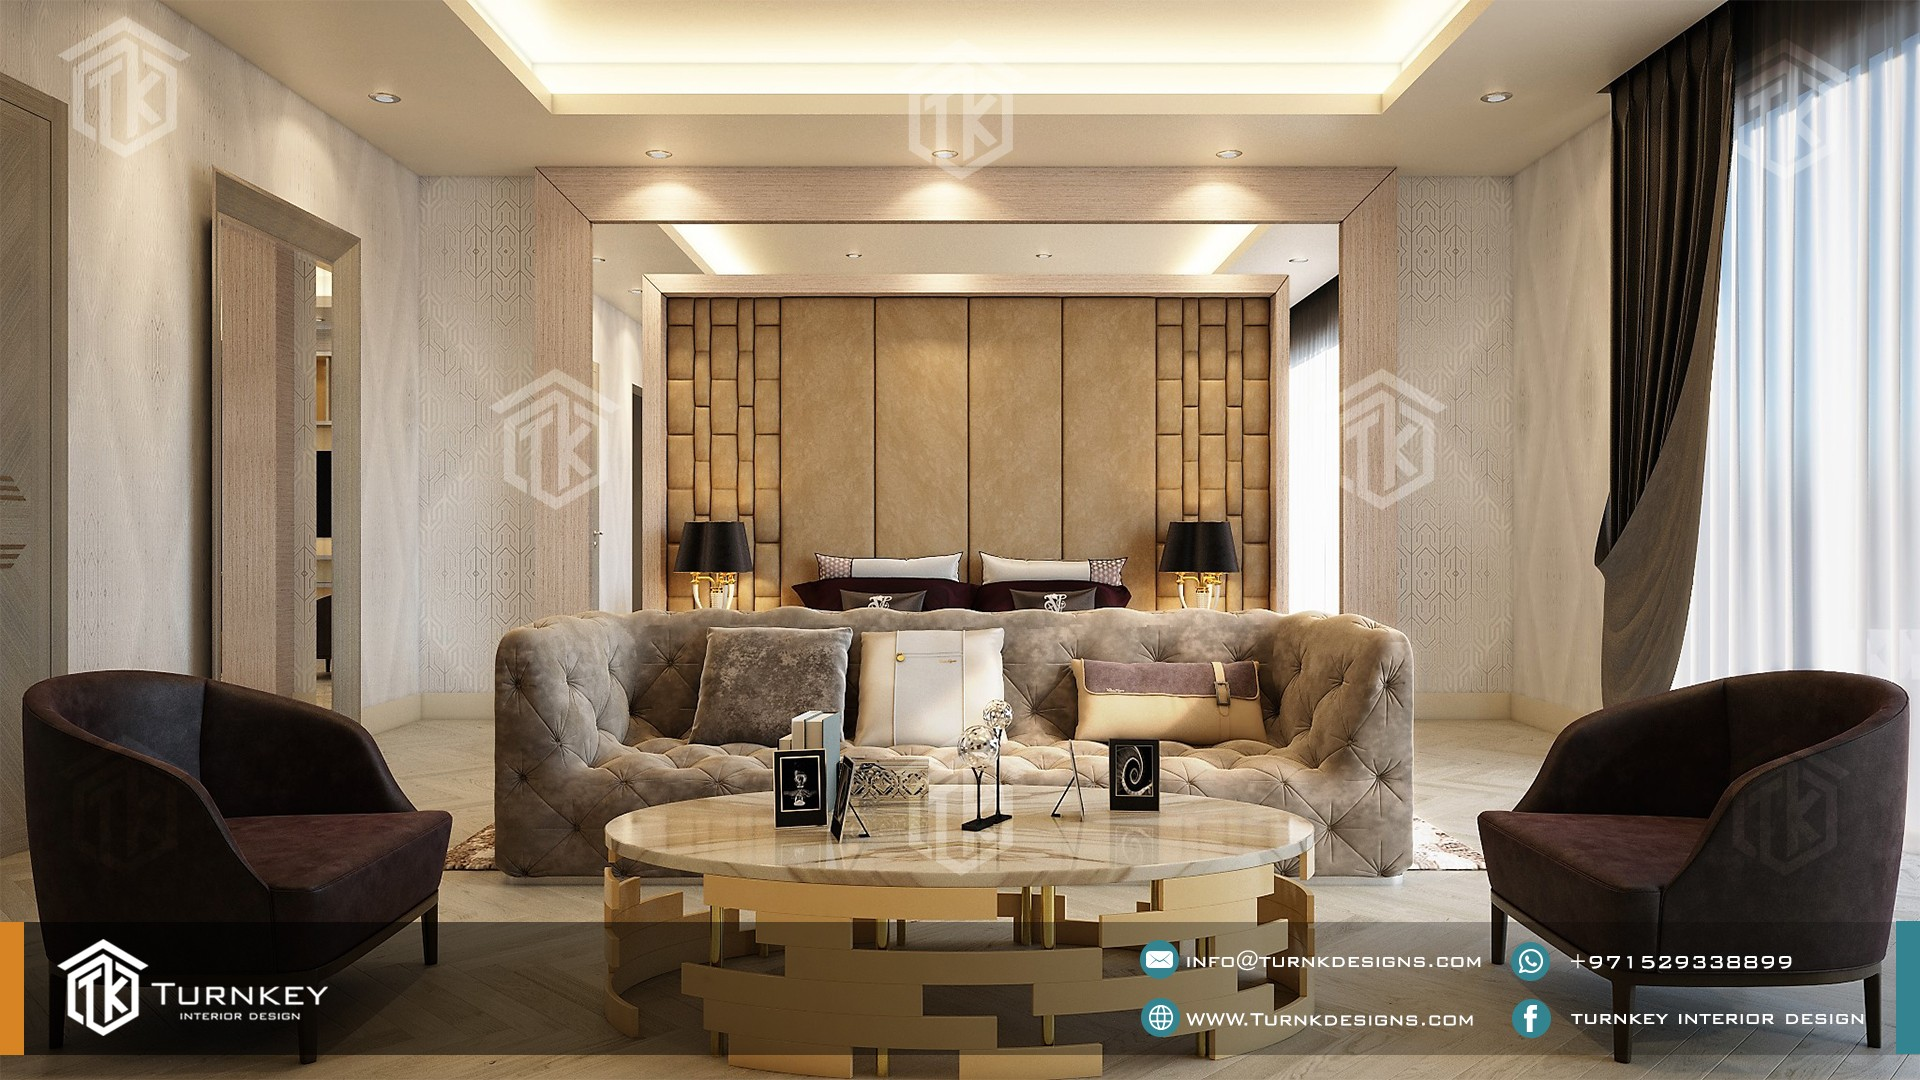 Turnkey Interior Design L L C Linkedin